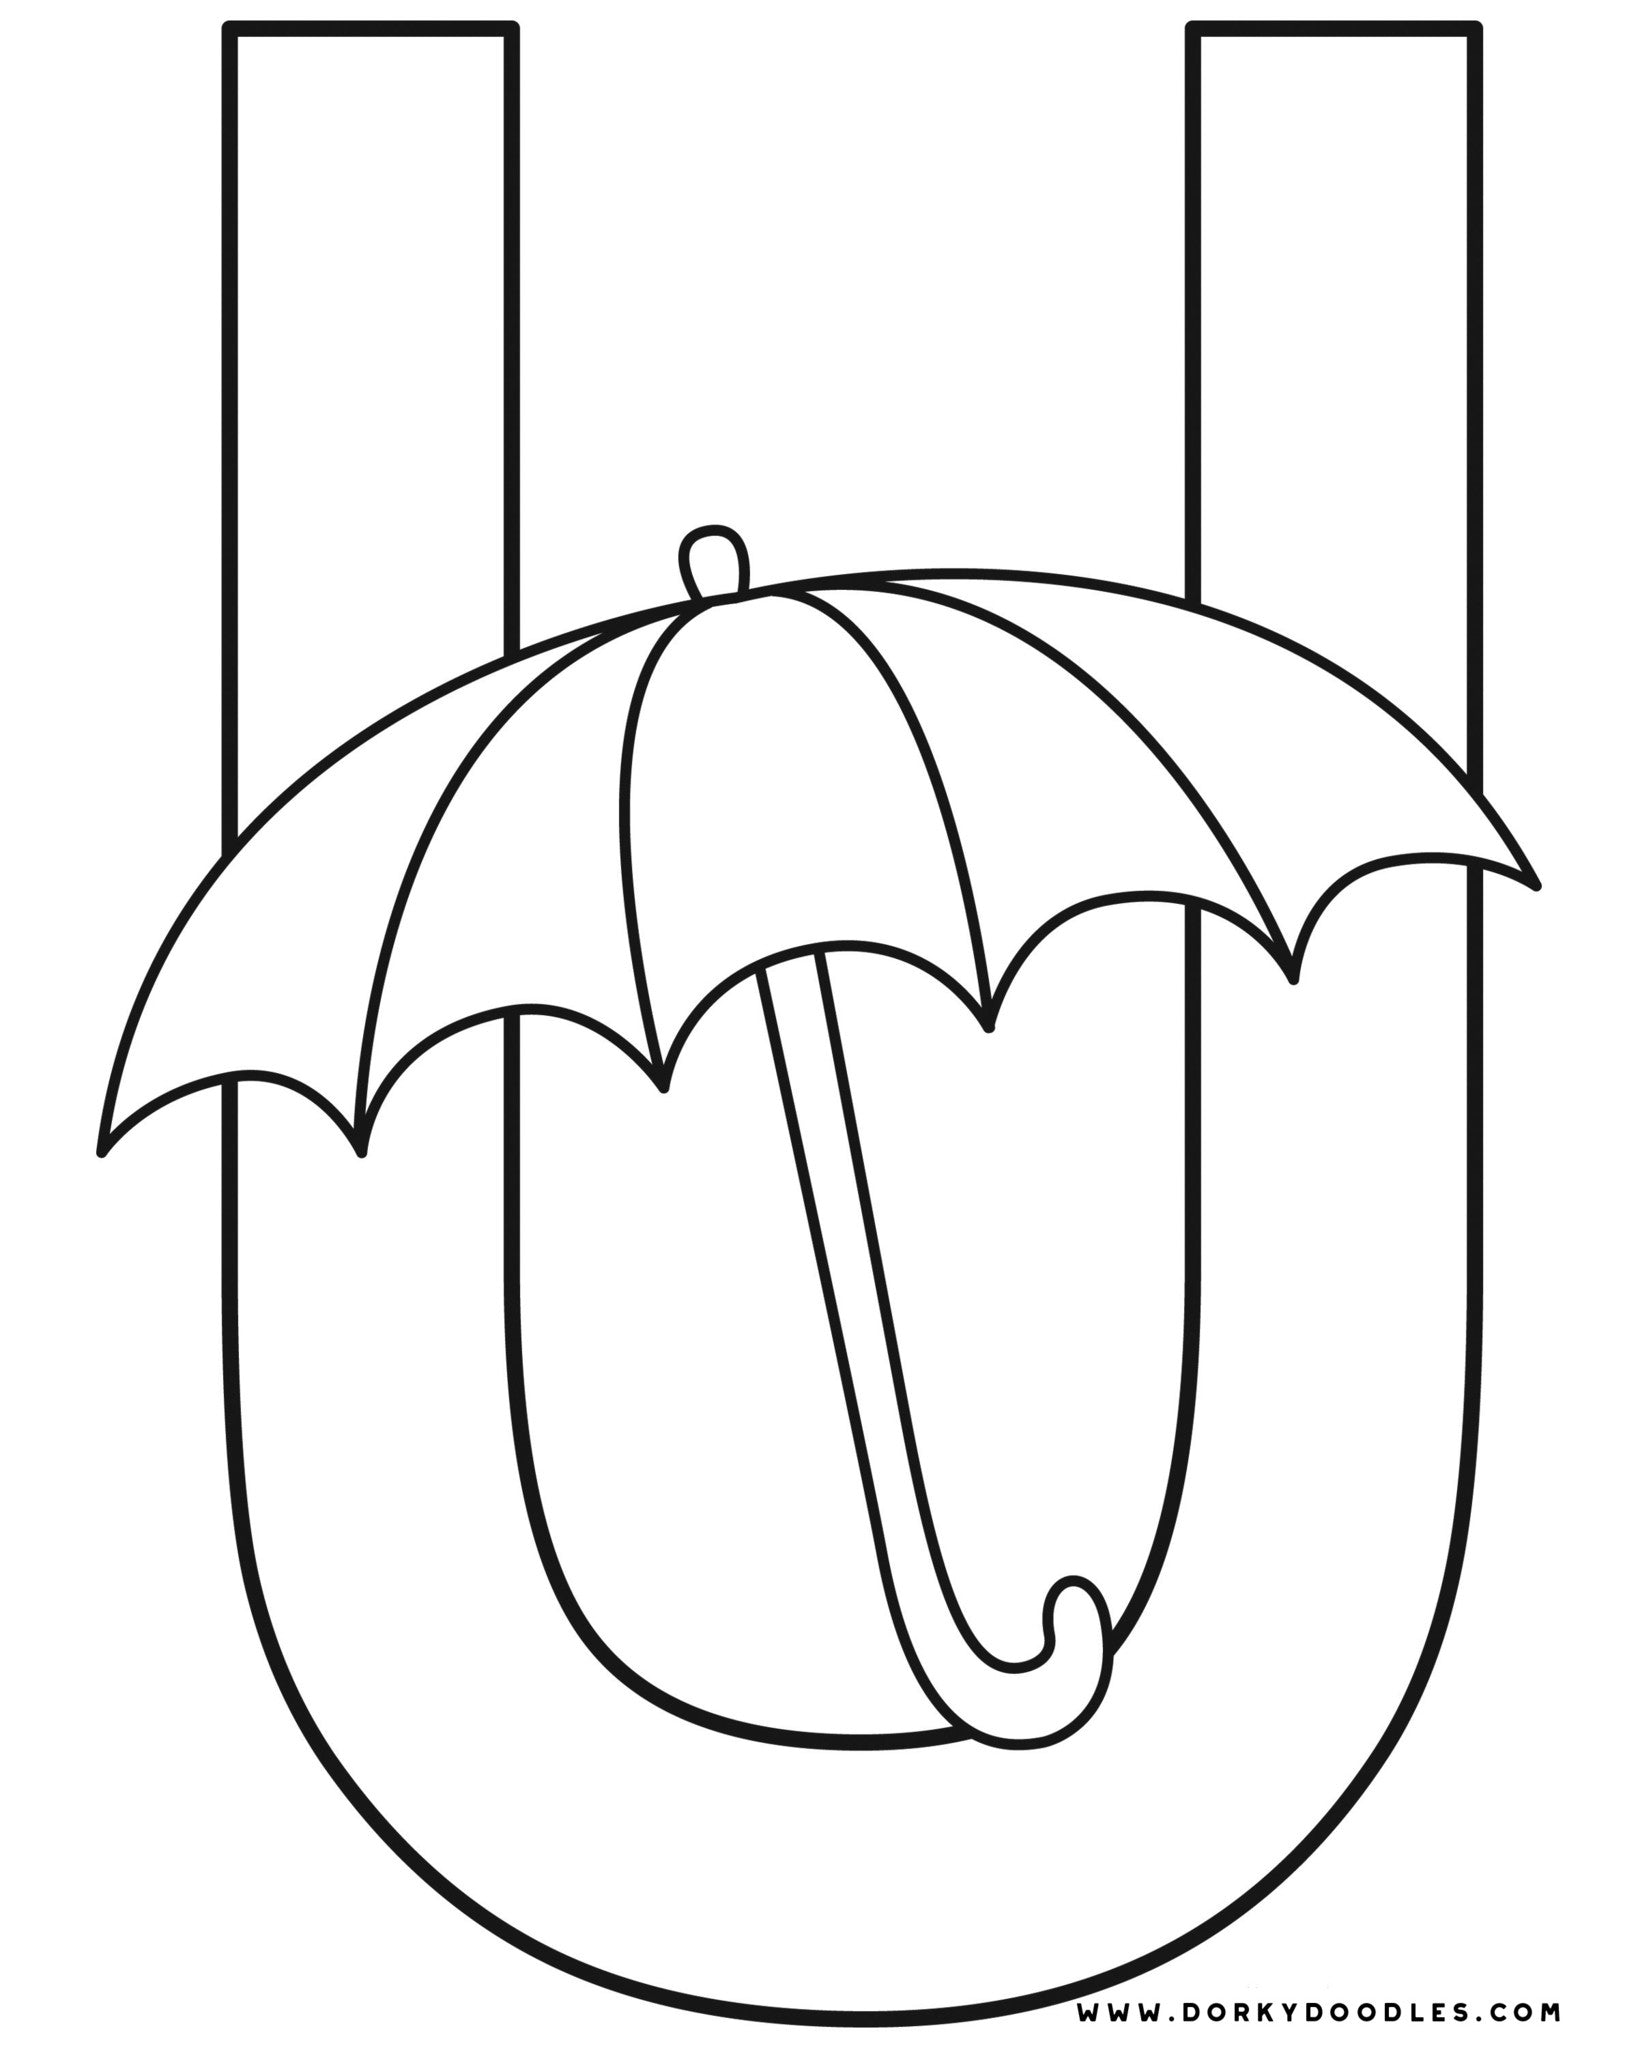 Letter u coloring pages - To Get These Free Printable Worksheets For The Letter U Just Right Click On The Images Below And Select Print Or Save Coloring Page